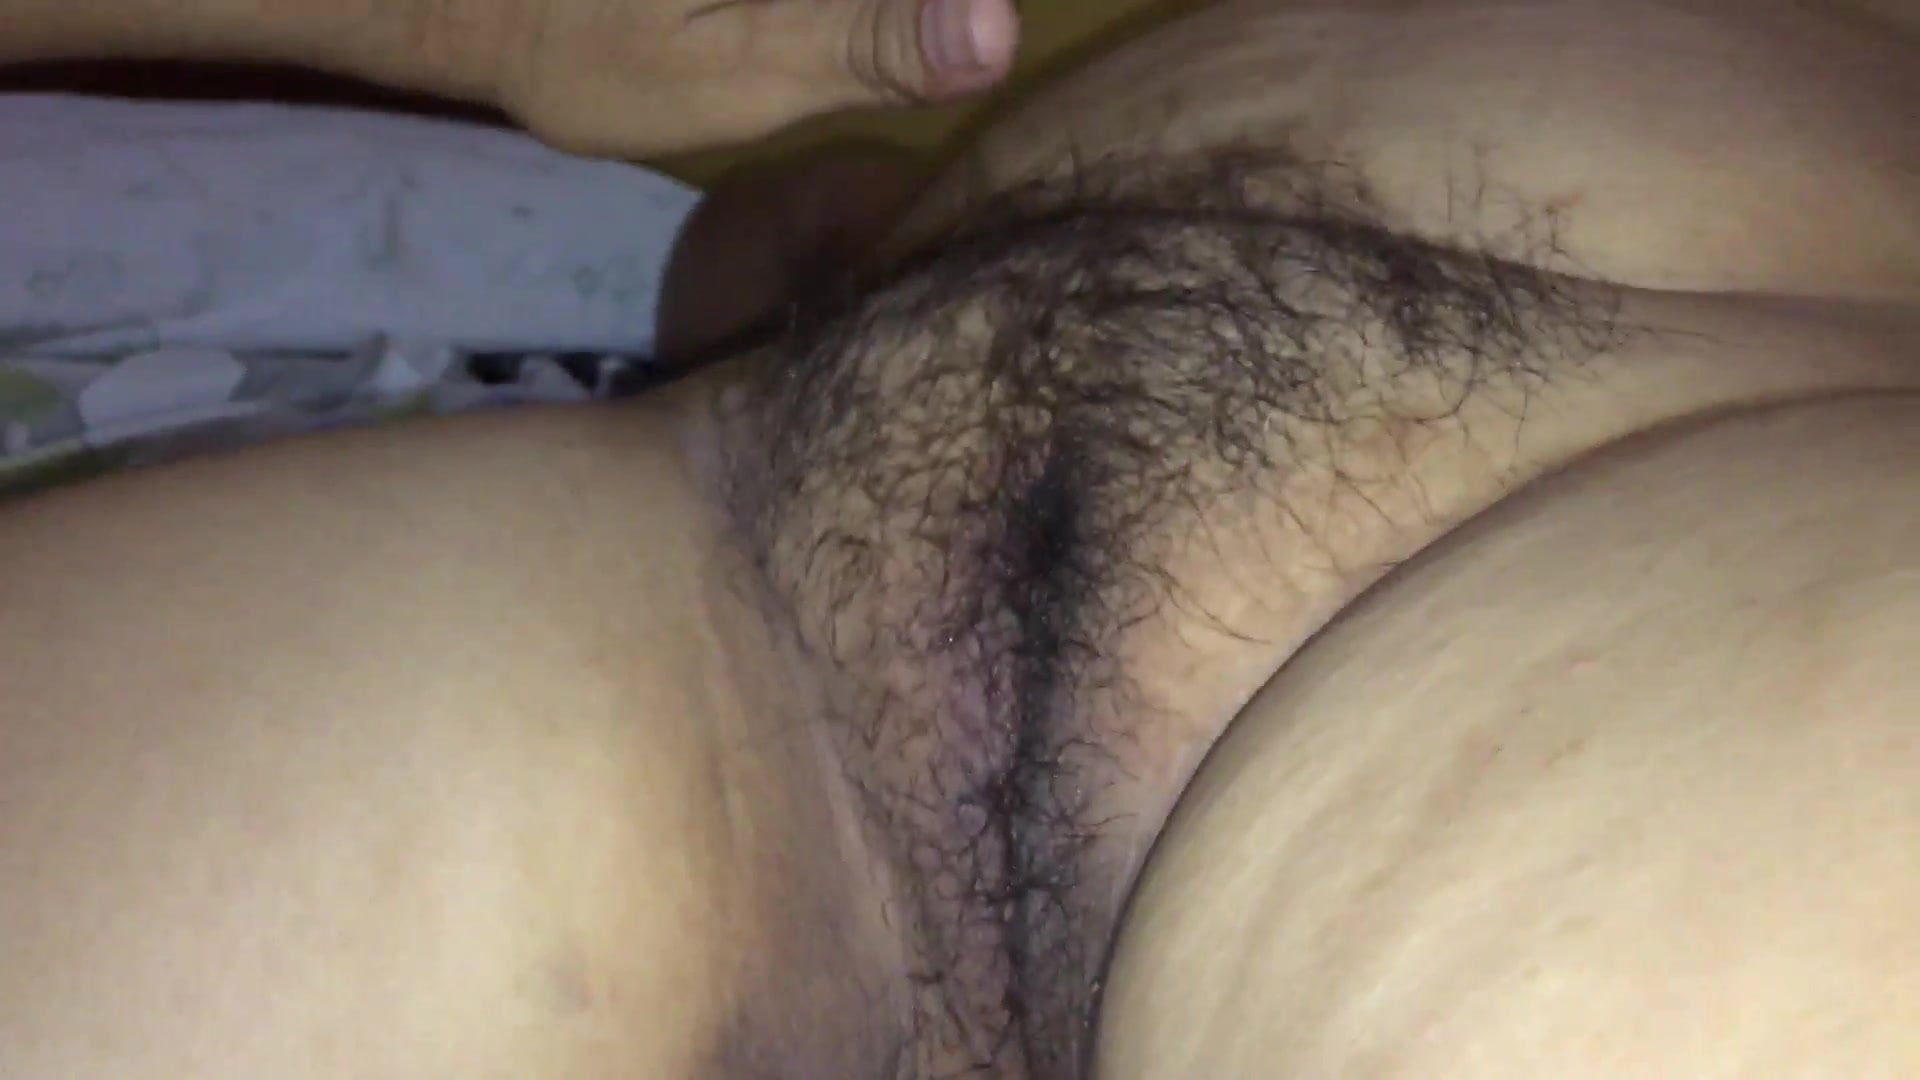 Chubby and Tight Pussy, Free Fit HD Porn Video c3: xHamster